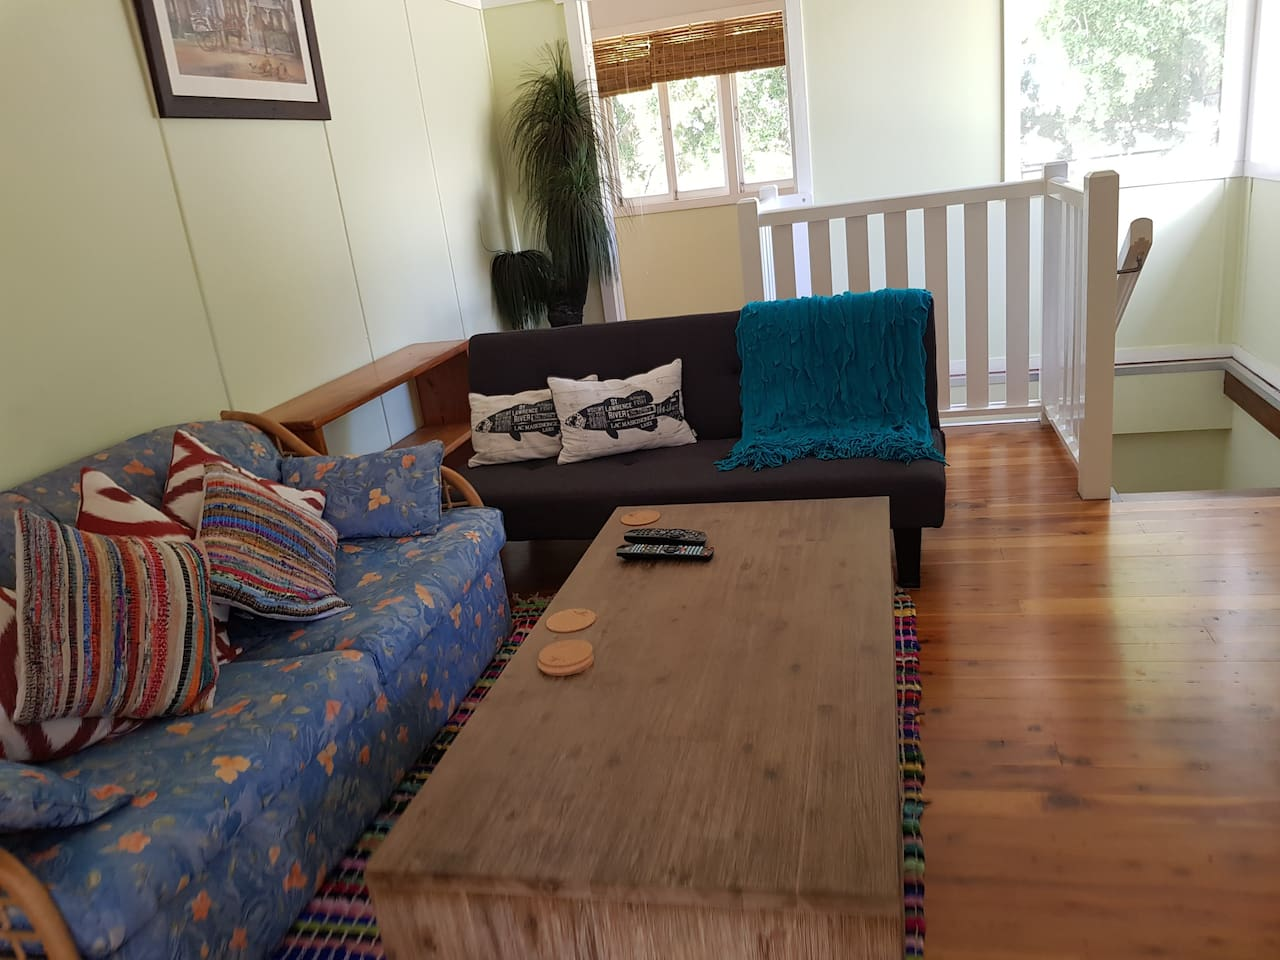 Fully furnished with comfy sofas....both converts into a bed